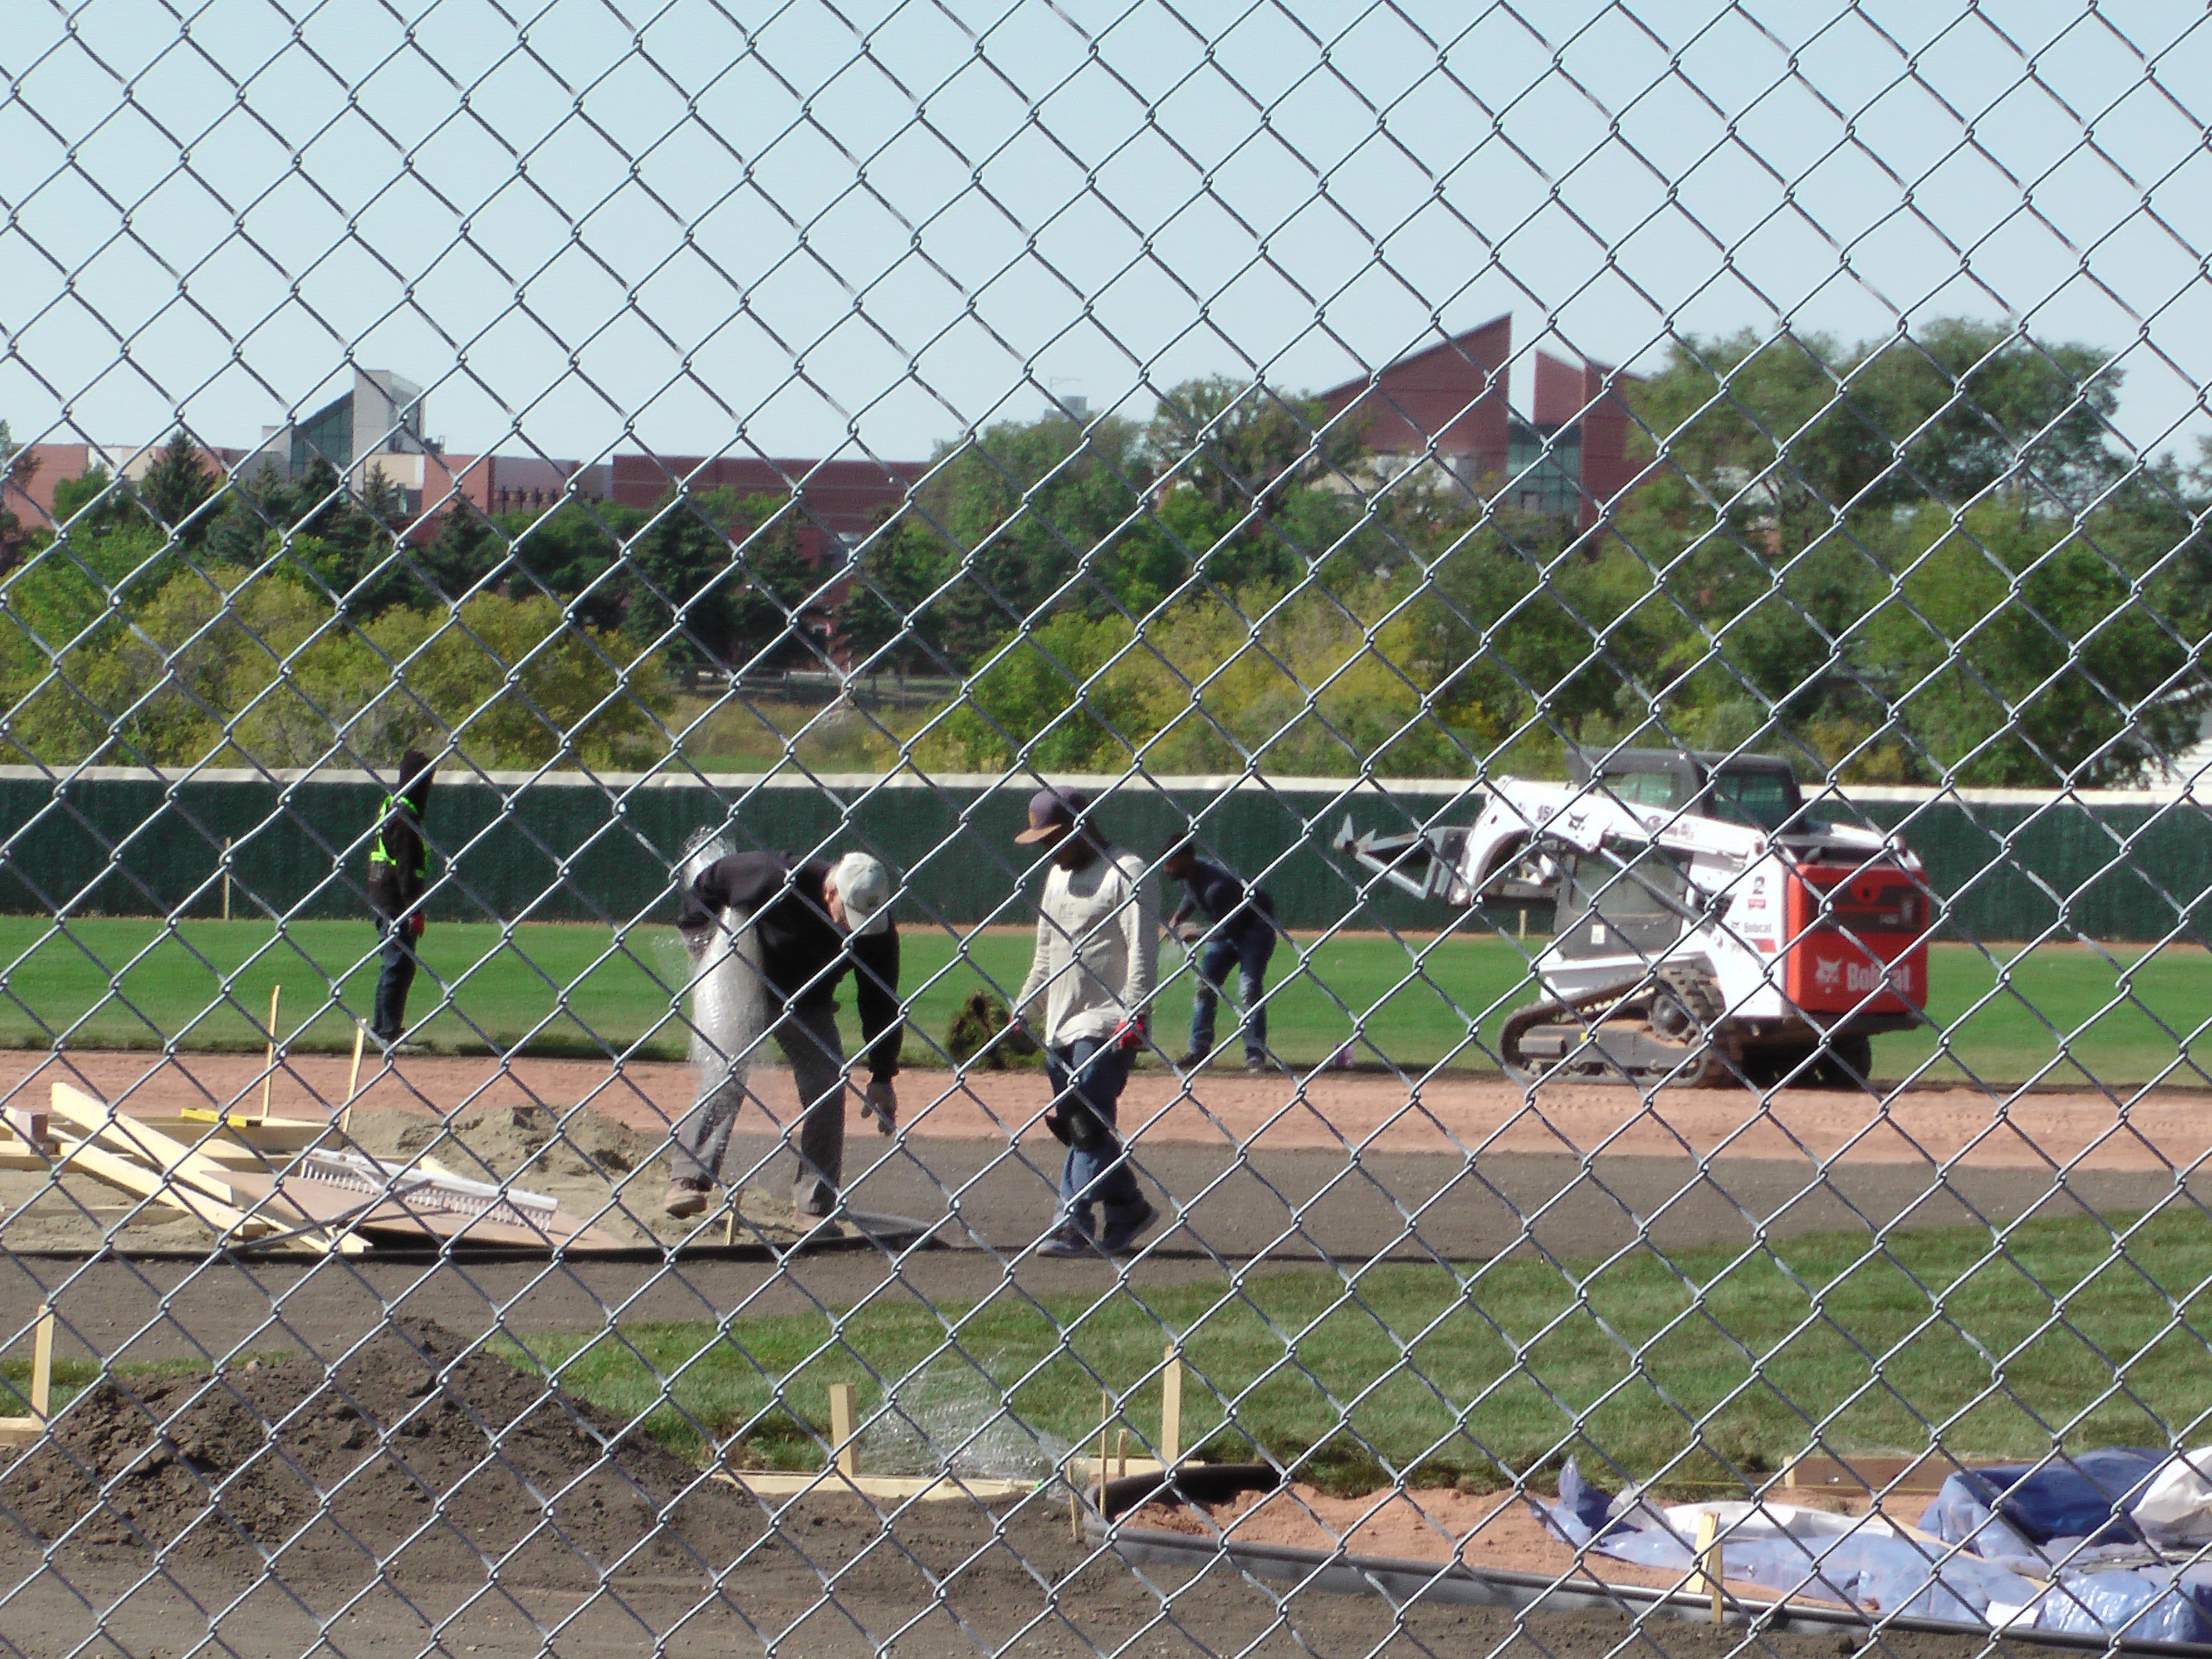 Sept 5 2018 Optimist Park Field Renovations, Placing New Sod/Leveling! - Image 9